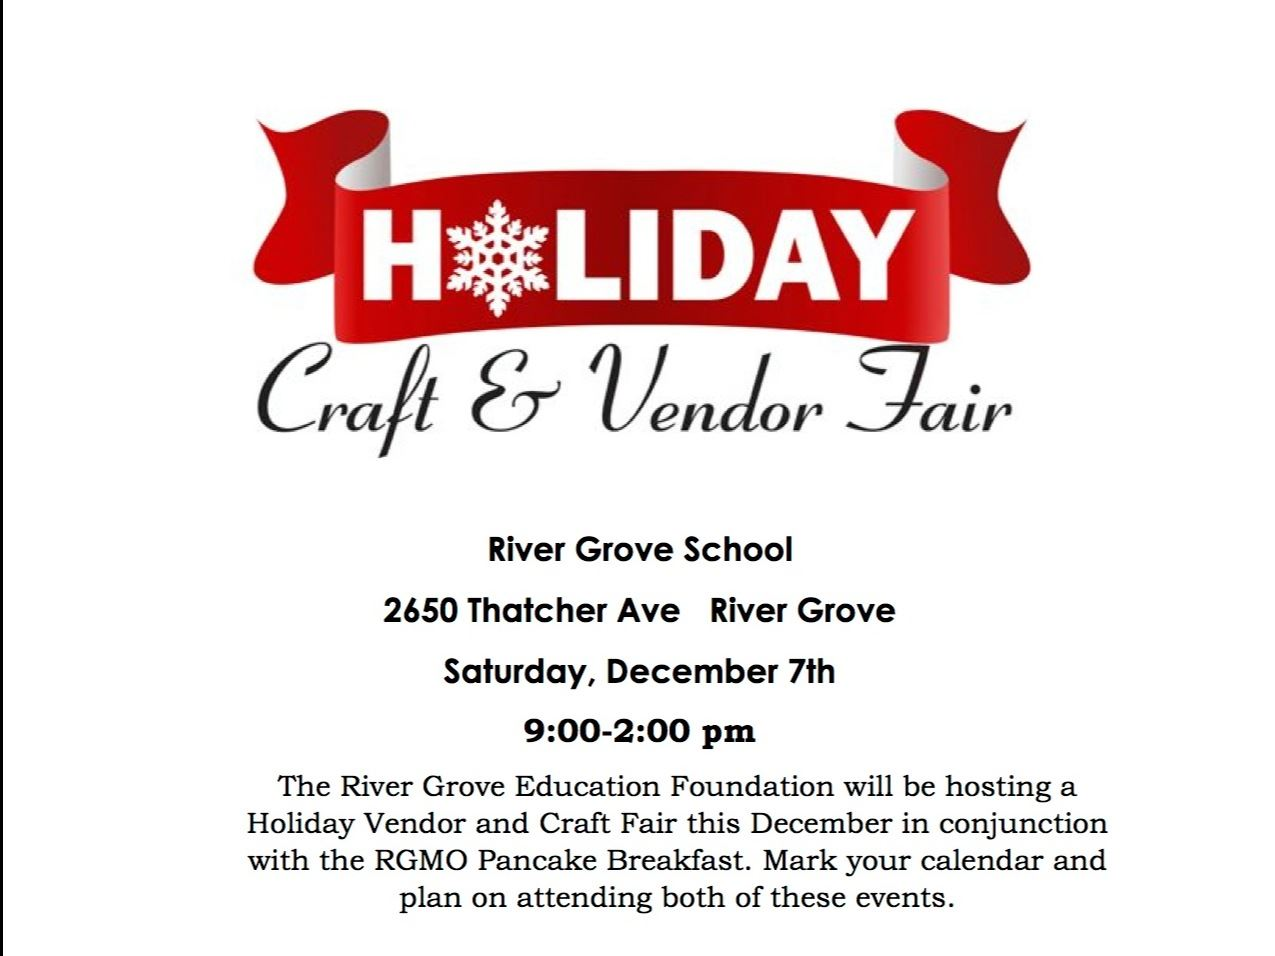 Flyer with information regarding the upcoming River Grove School Holiday Craft Fair